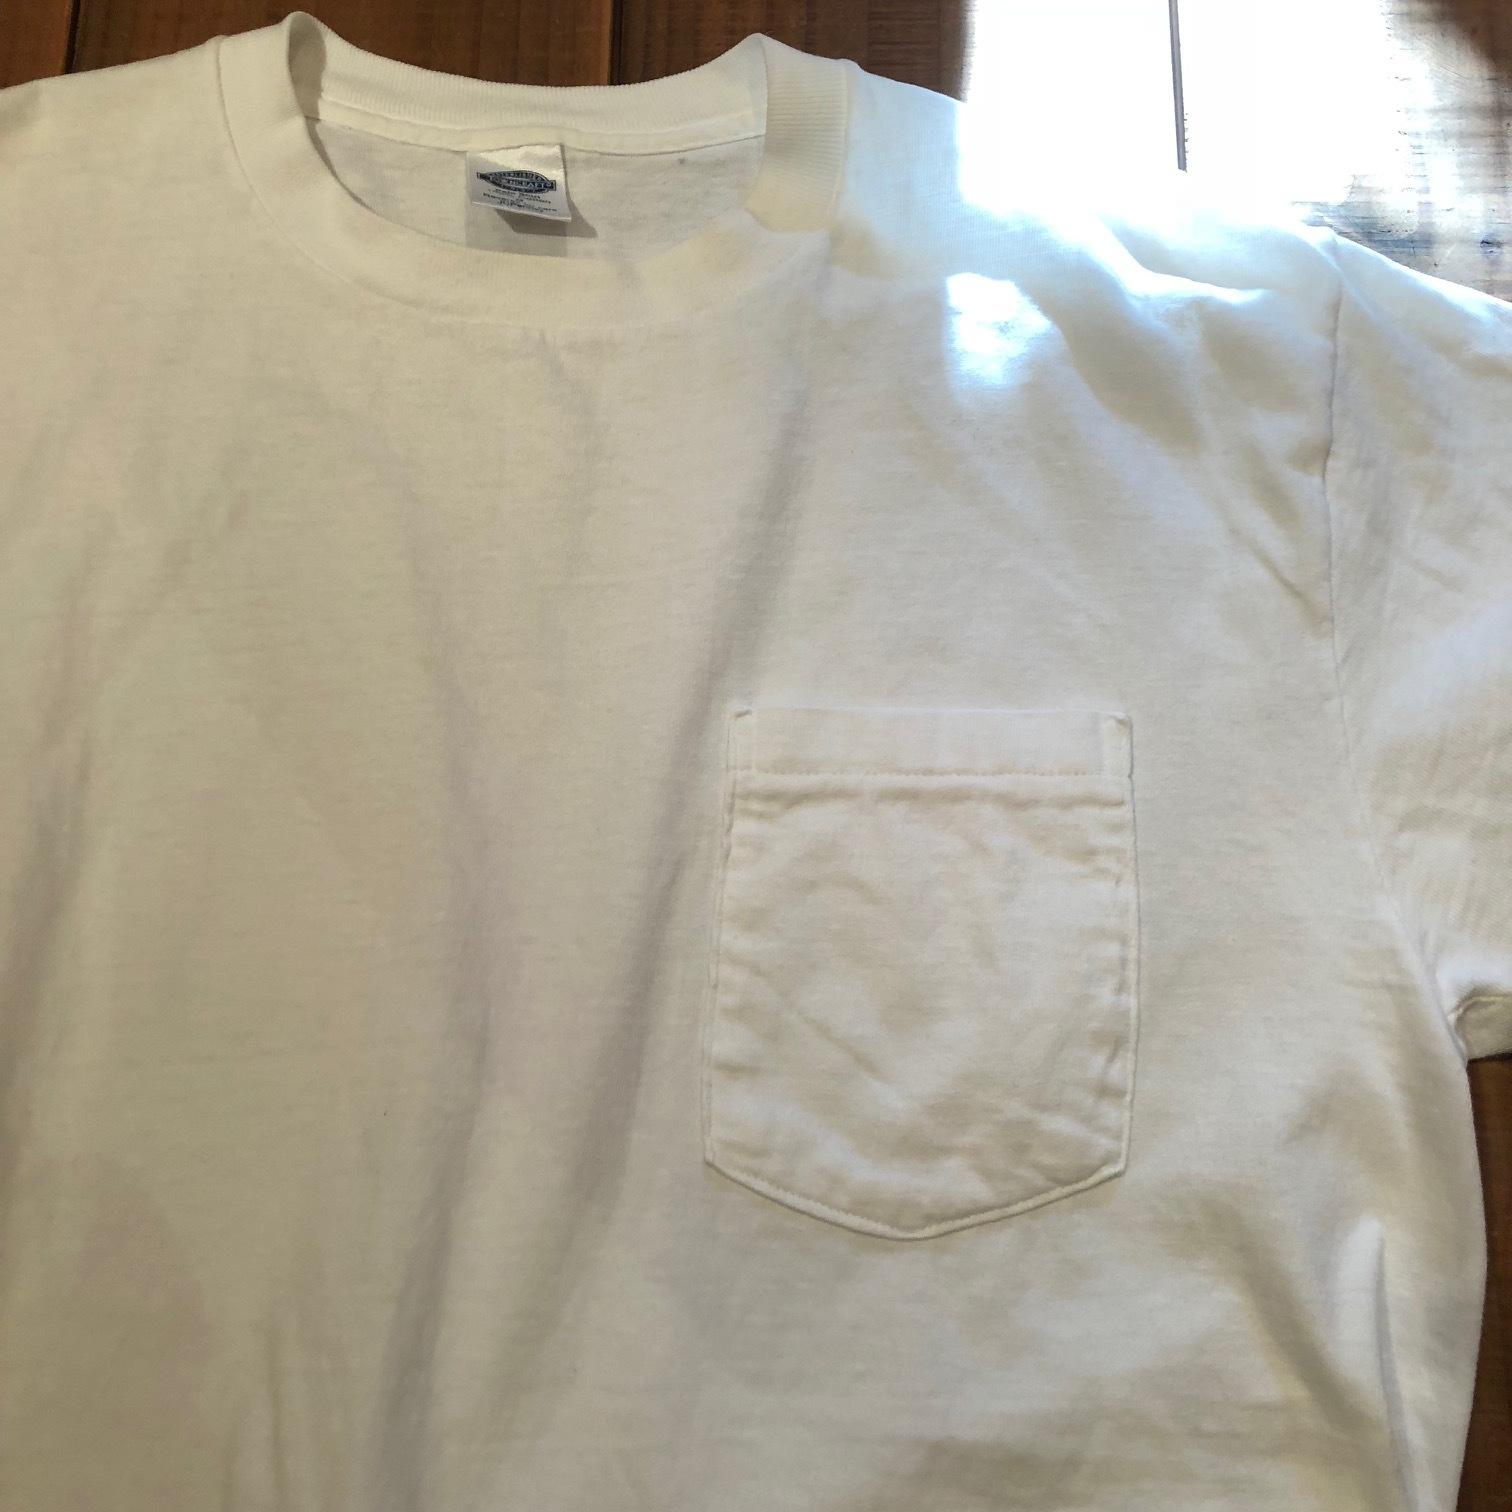 "1980s "" FRUIT OF THE LOOM \"" 100% cotton - BLACK - VINTAGE POCKET Tee SHIRTS × 4P - WHITE - × 4P ._d0172088_18363197.jpg"